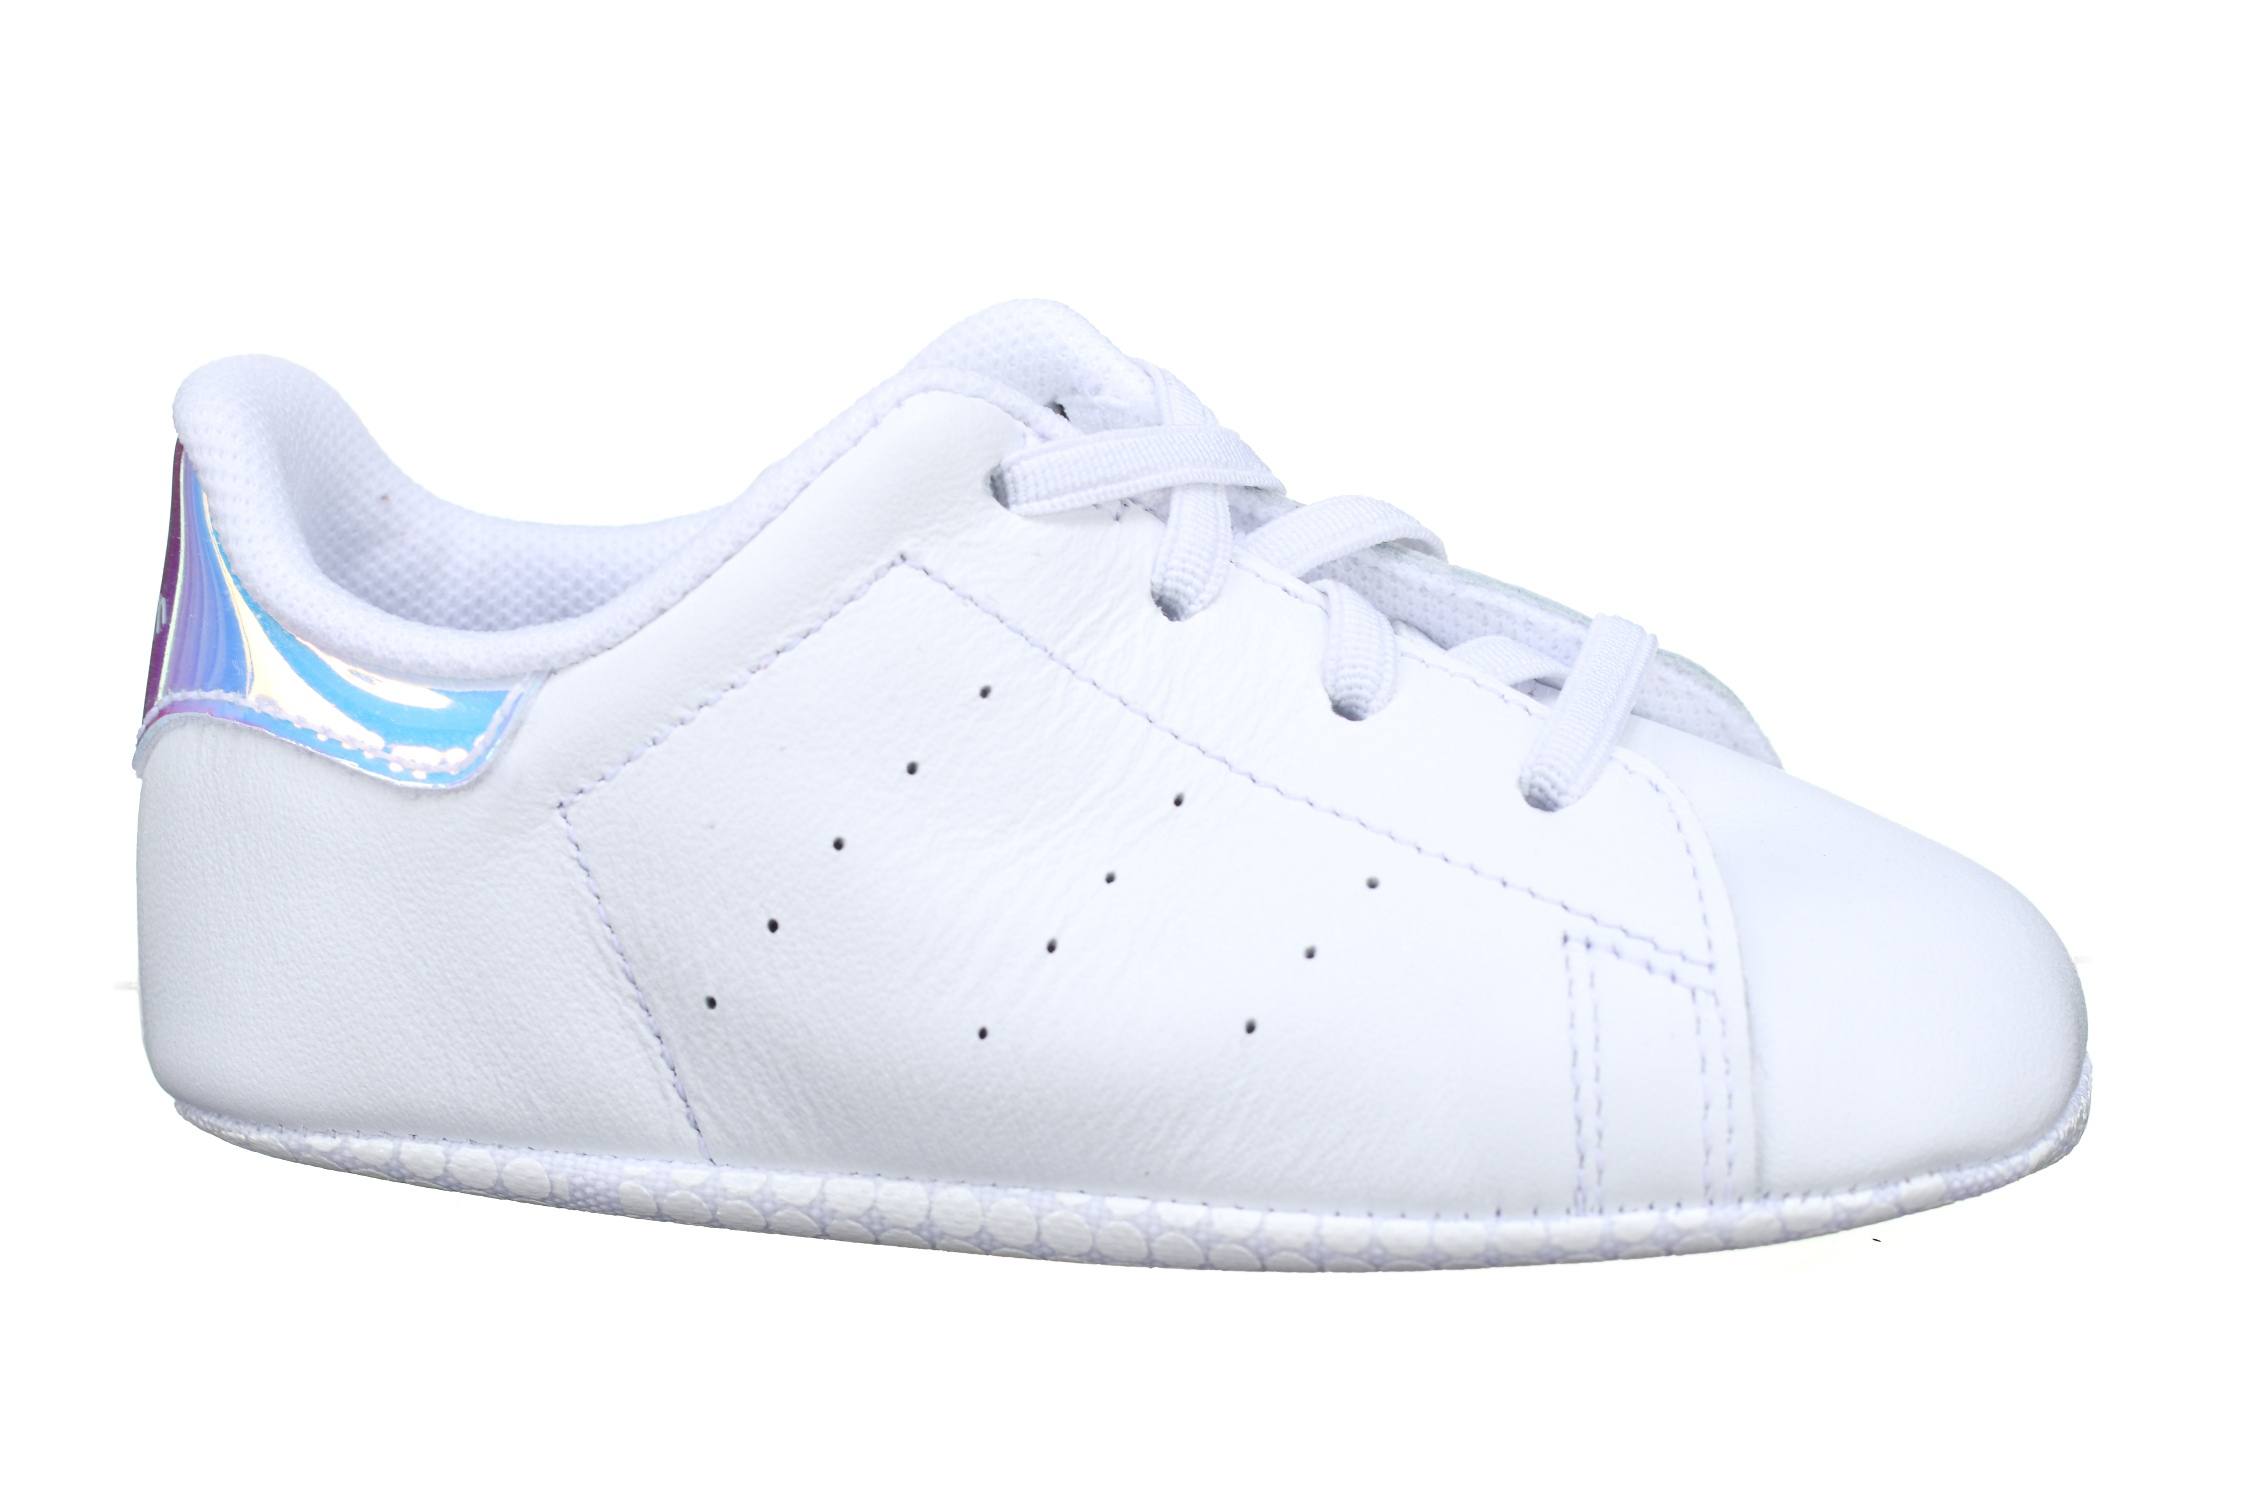 http://www.leadermode.com/170040/adidas-stan-smith-crib-cg6543-white-silver.jpg